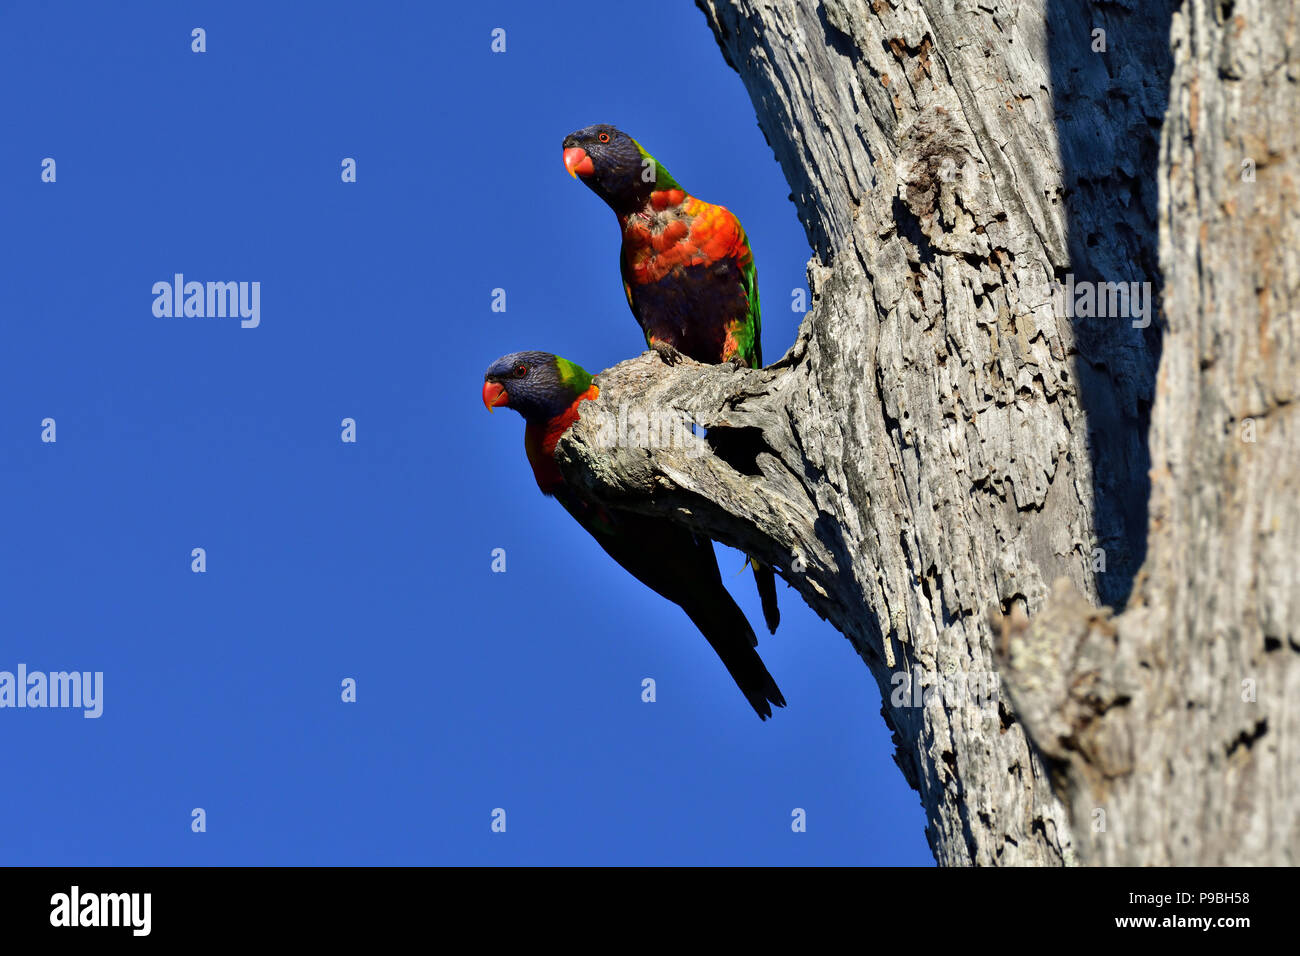 Australian, Queensland Rainbow Lorikeets ( Trichoglossus haematodus ) perched on the side of a dead tree trunk Stock Photo